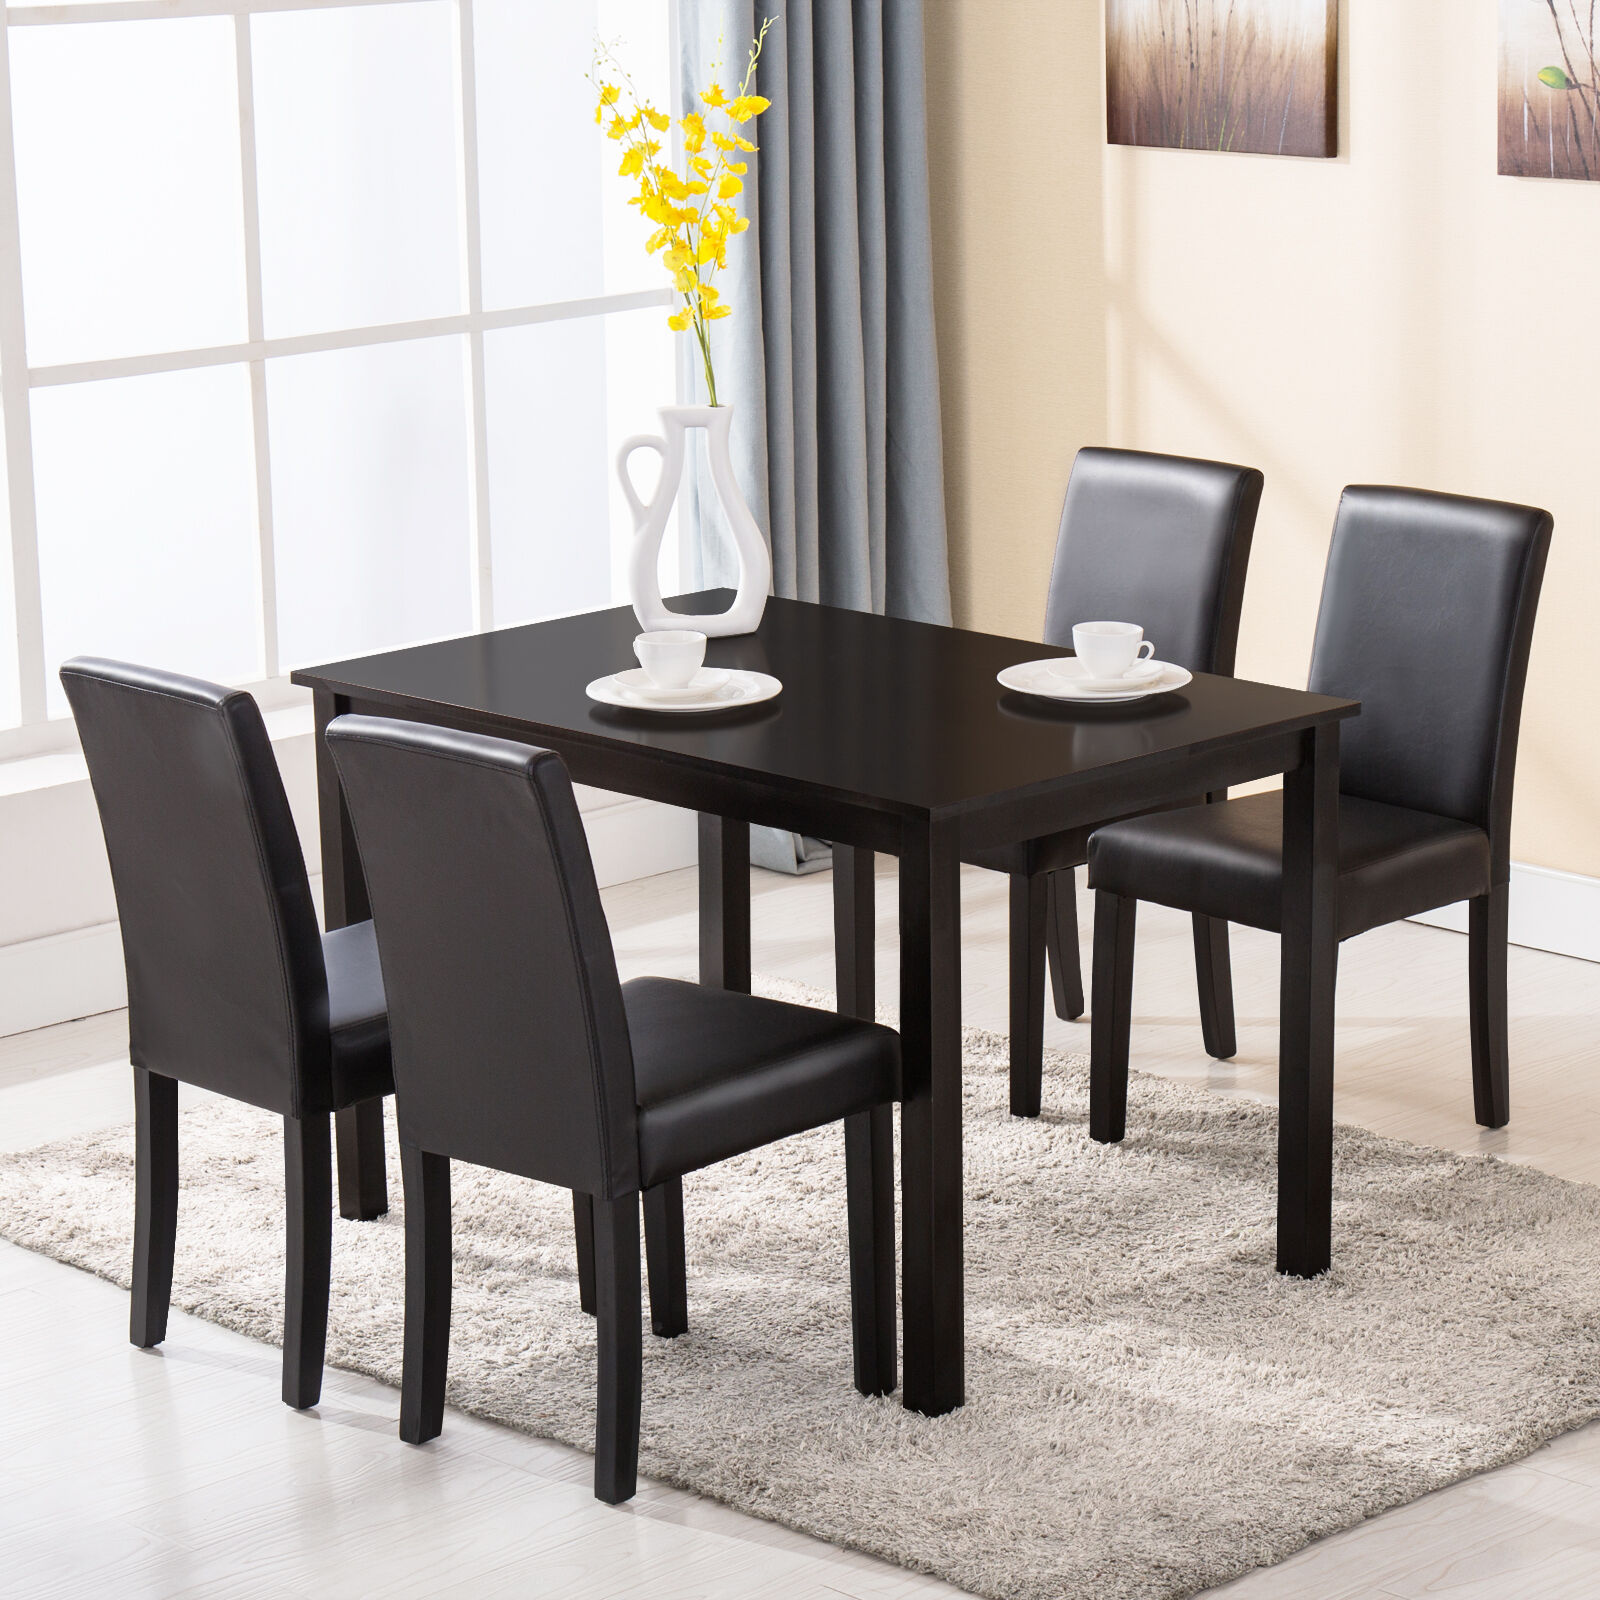 5 piece dining table set 4 chairs wood kitchen dinette for 4 dining room table